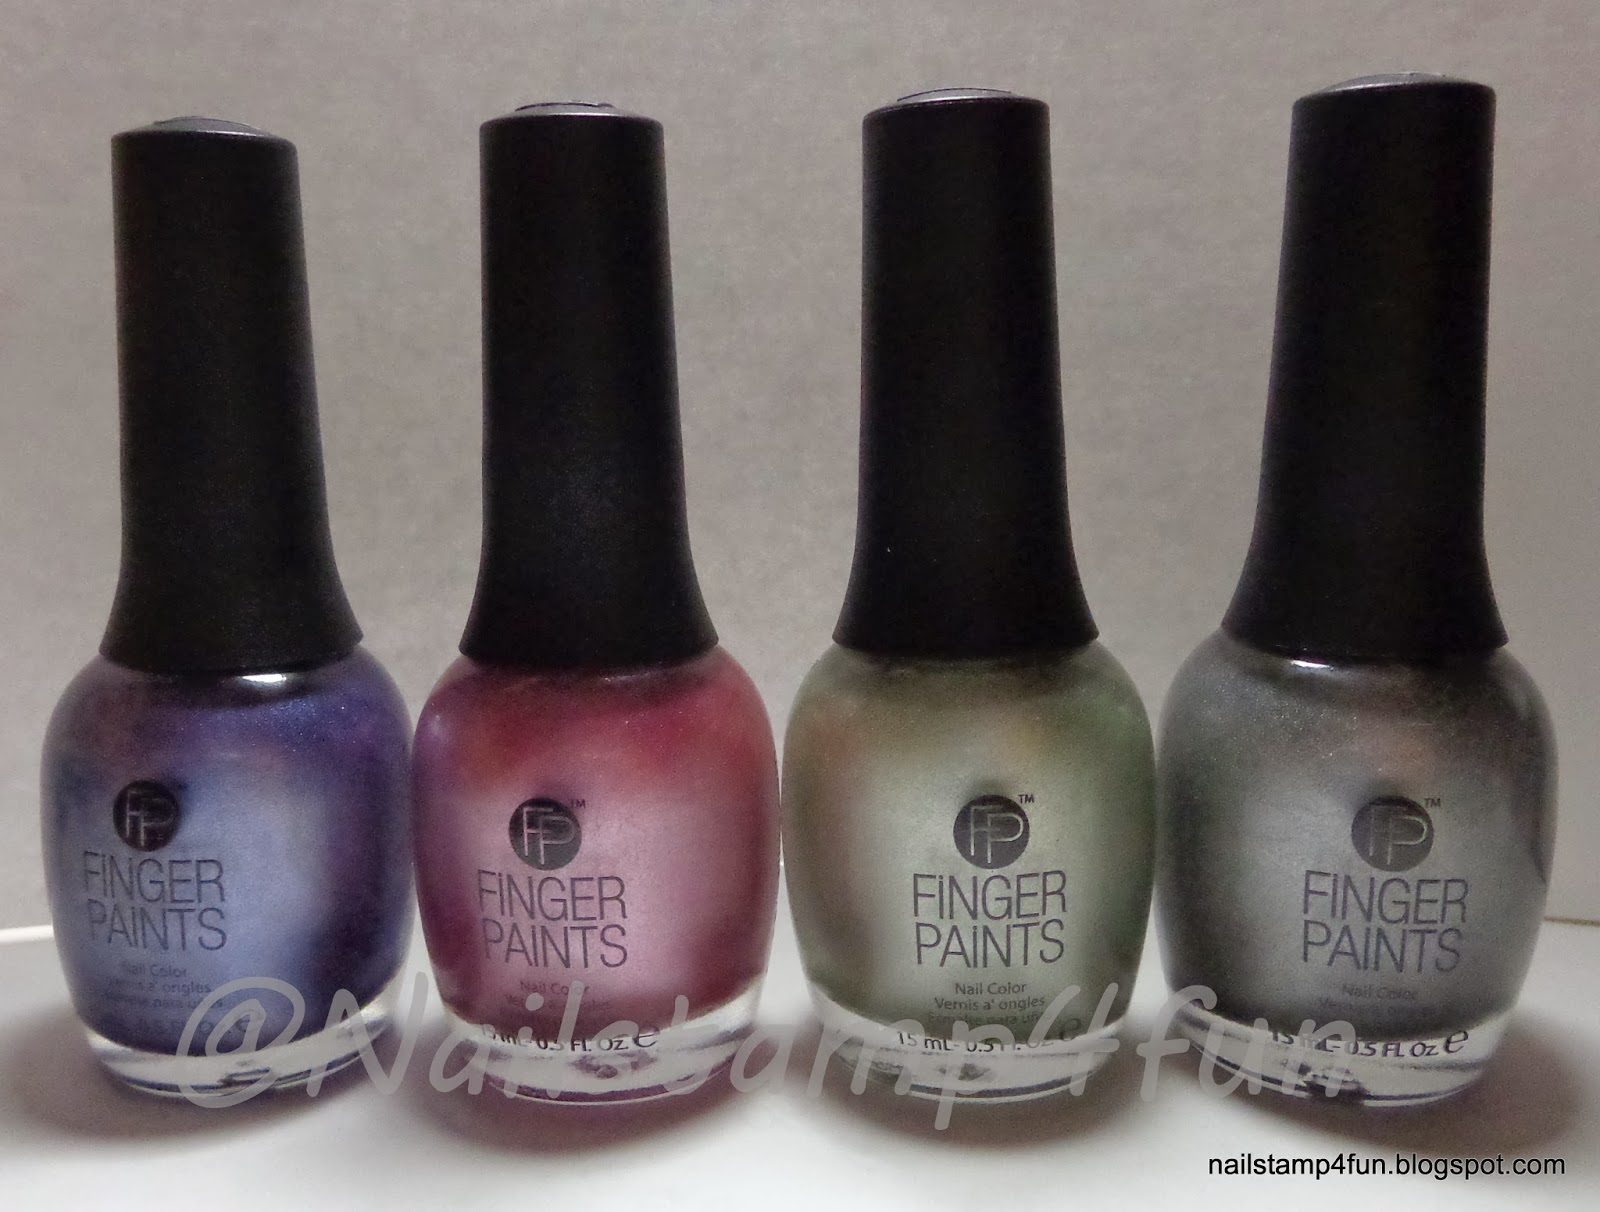 Nail Stamp 4 Fun: FingerPaints Rock My World 2014 Collection ...